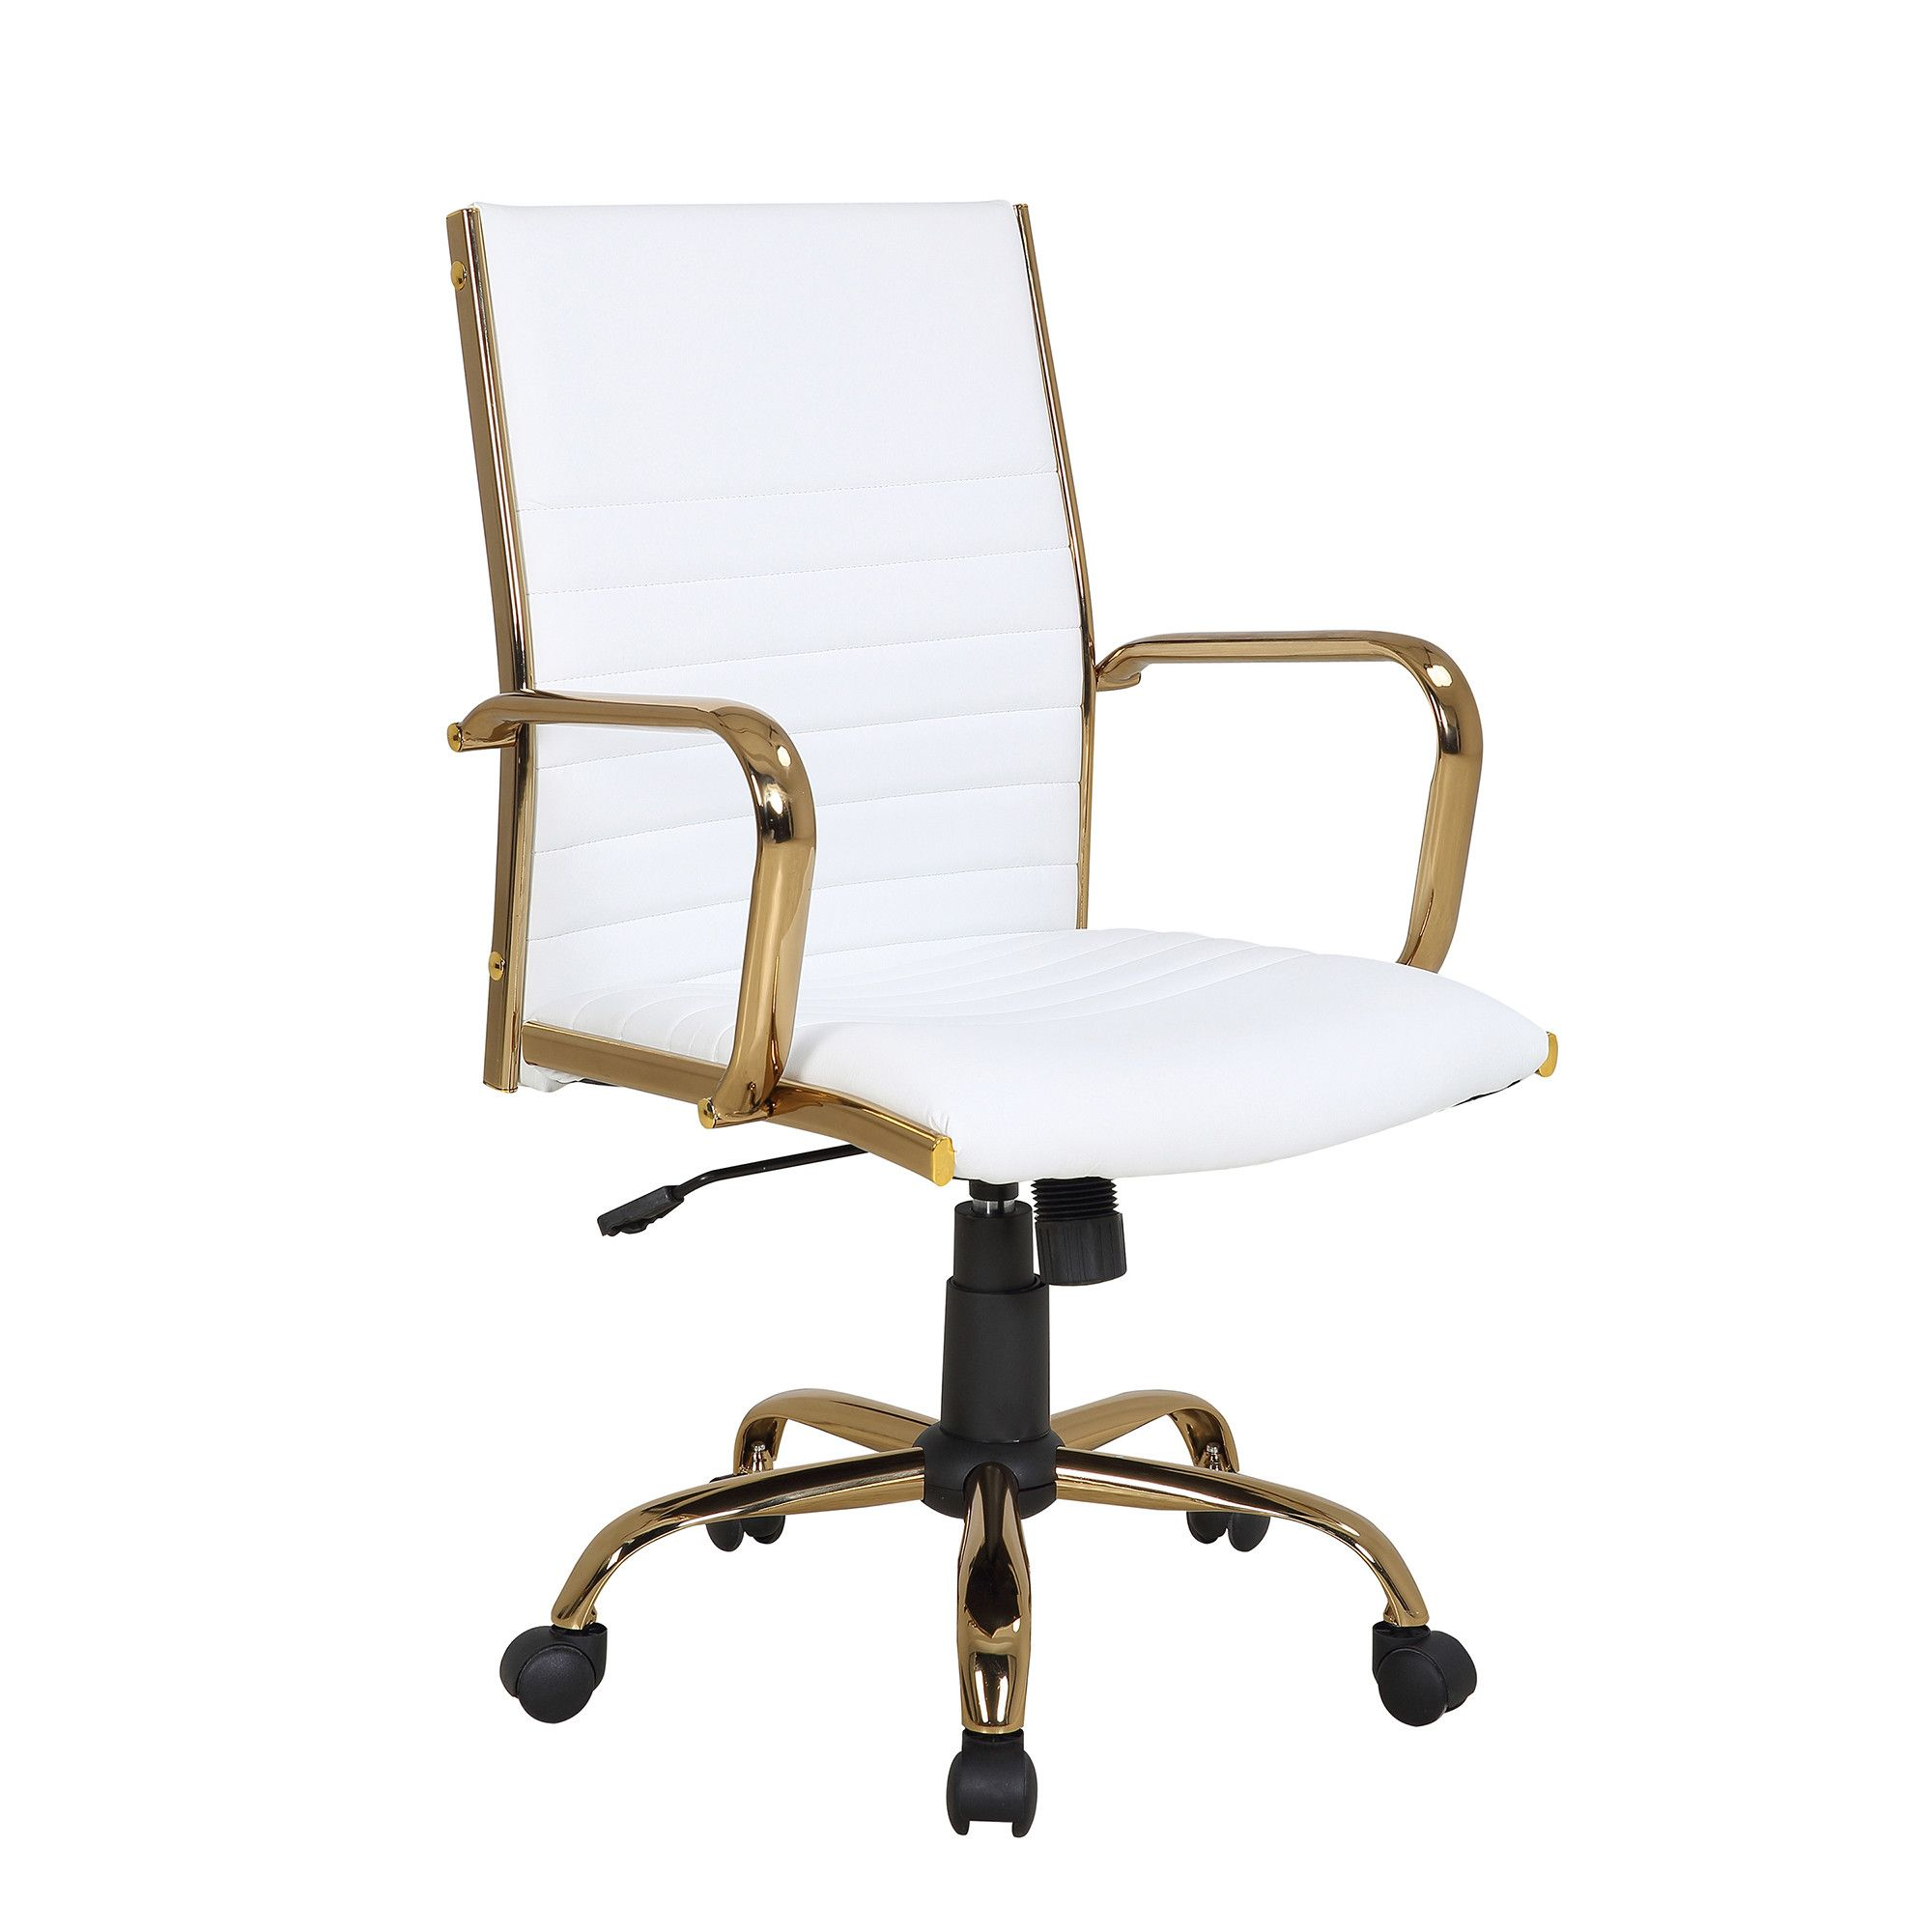 Master Contemporary Adjustable Office Chair W Swivel In Gold W White Faux Leather Lumi Adjustable Office Chair Contemporary Office Chairs Gold Office Chair